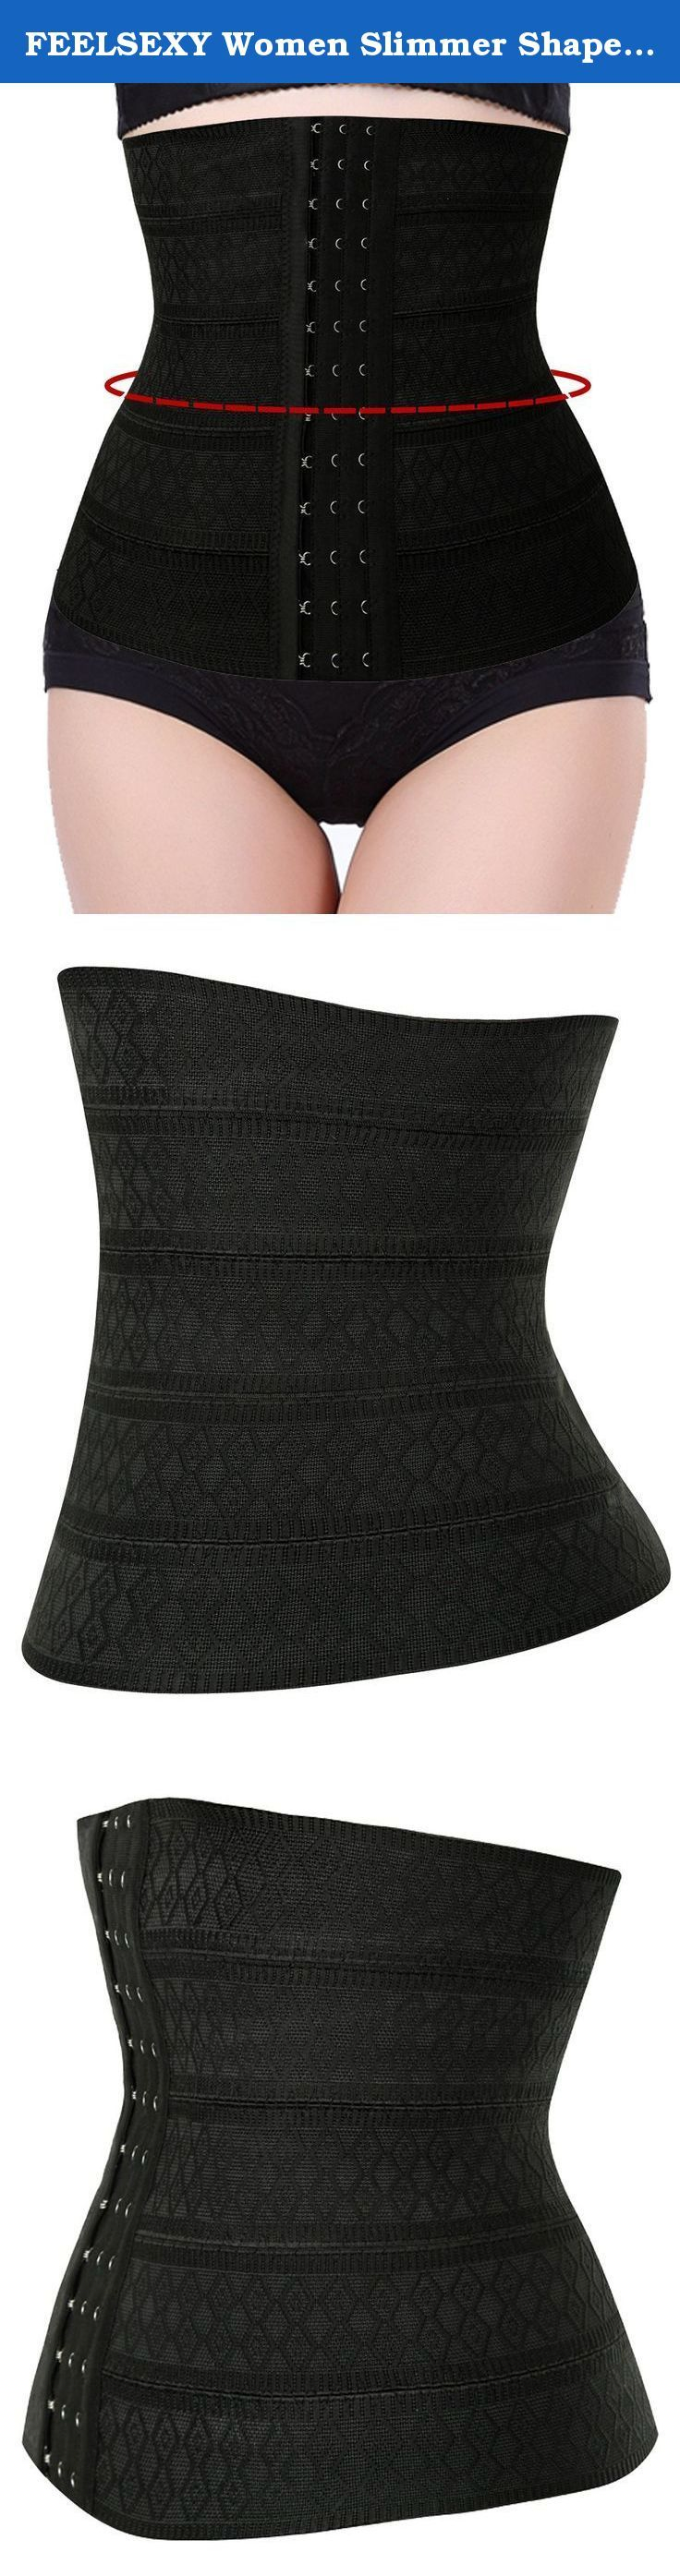 FEELSEXY Women Slimmer Shapewear Waist Cincher Trainer Corset Shaper Fat Burner. Please use our own Size Chart guide located on the left of the product image. Do not use the Amazon size guide.and choose the proper size based on your waist size. Please Attention: 1.Only hand washing ,No Iron/No Machine Washing/No Chlorine bleaching/No Dry cleaning. 2.Find your perfect size. When figuring out the size of shapewear that is right for you, use your dress size as your guide. There may be slight...